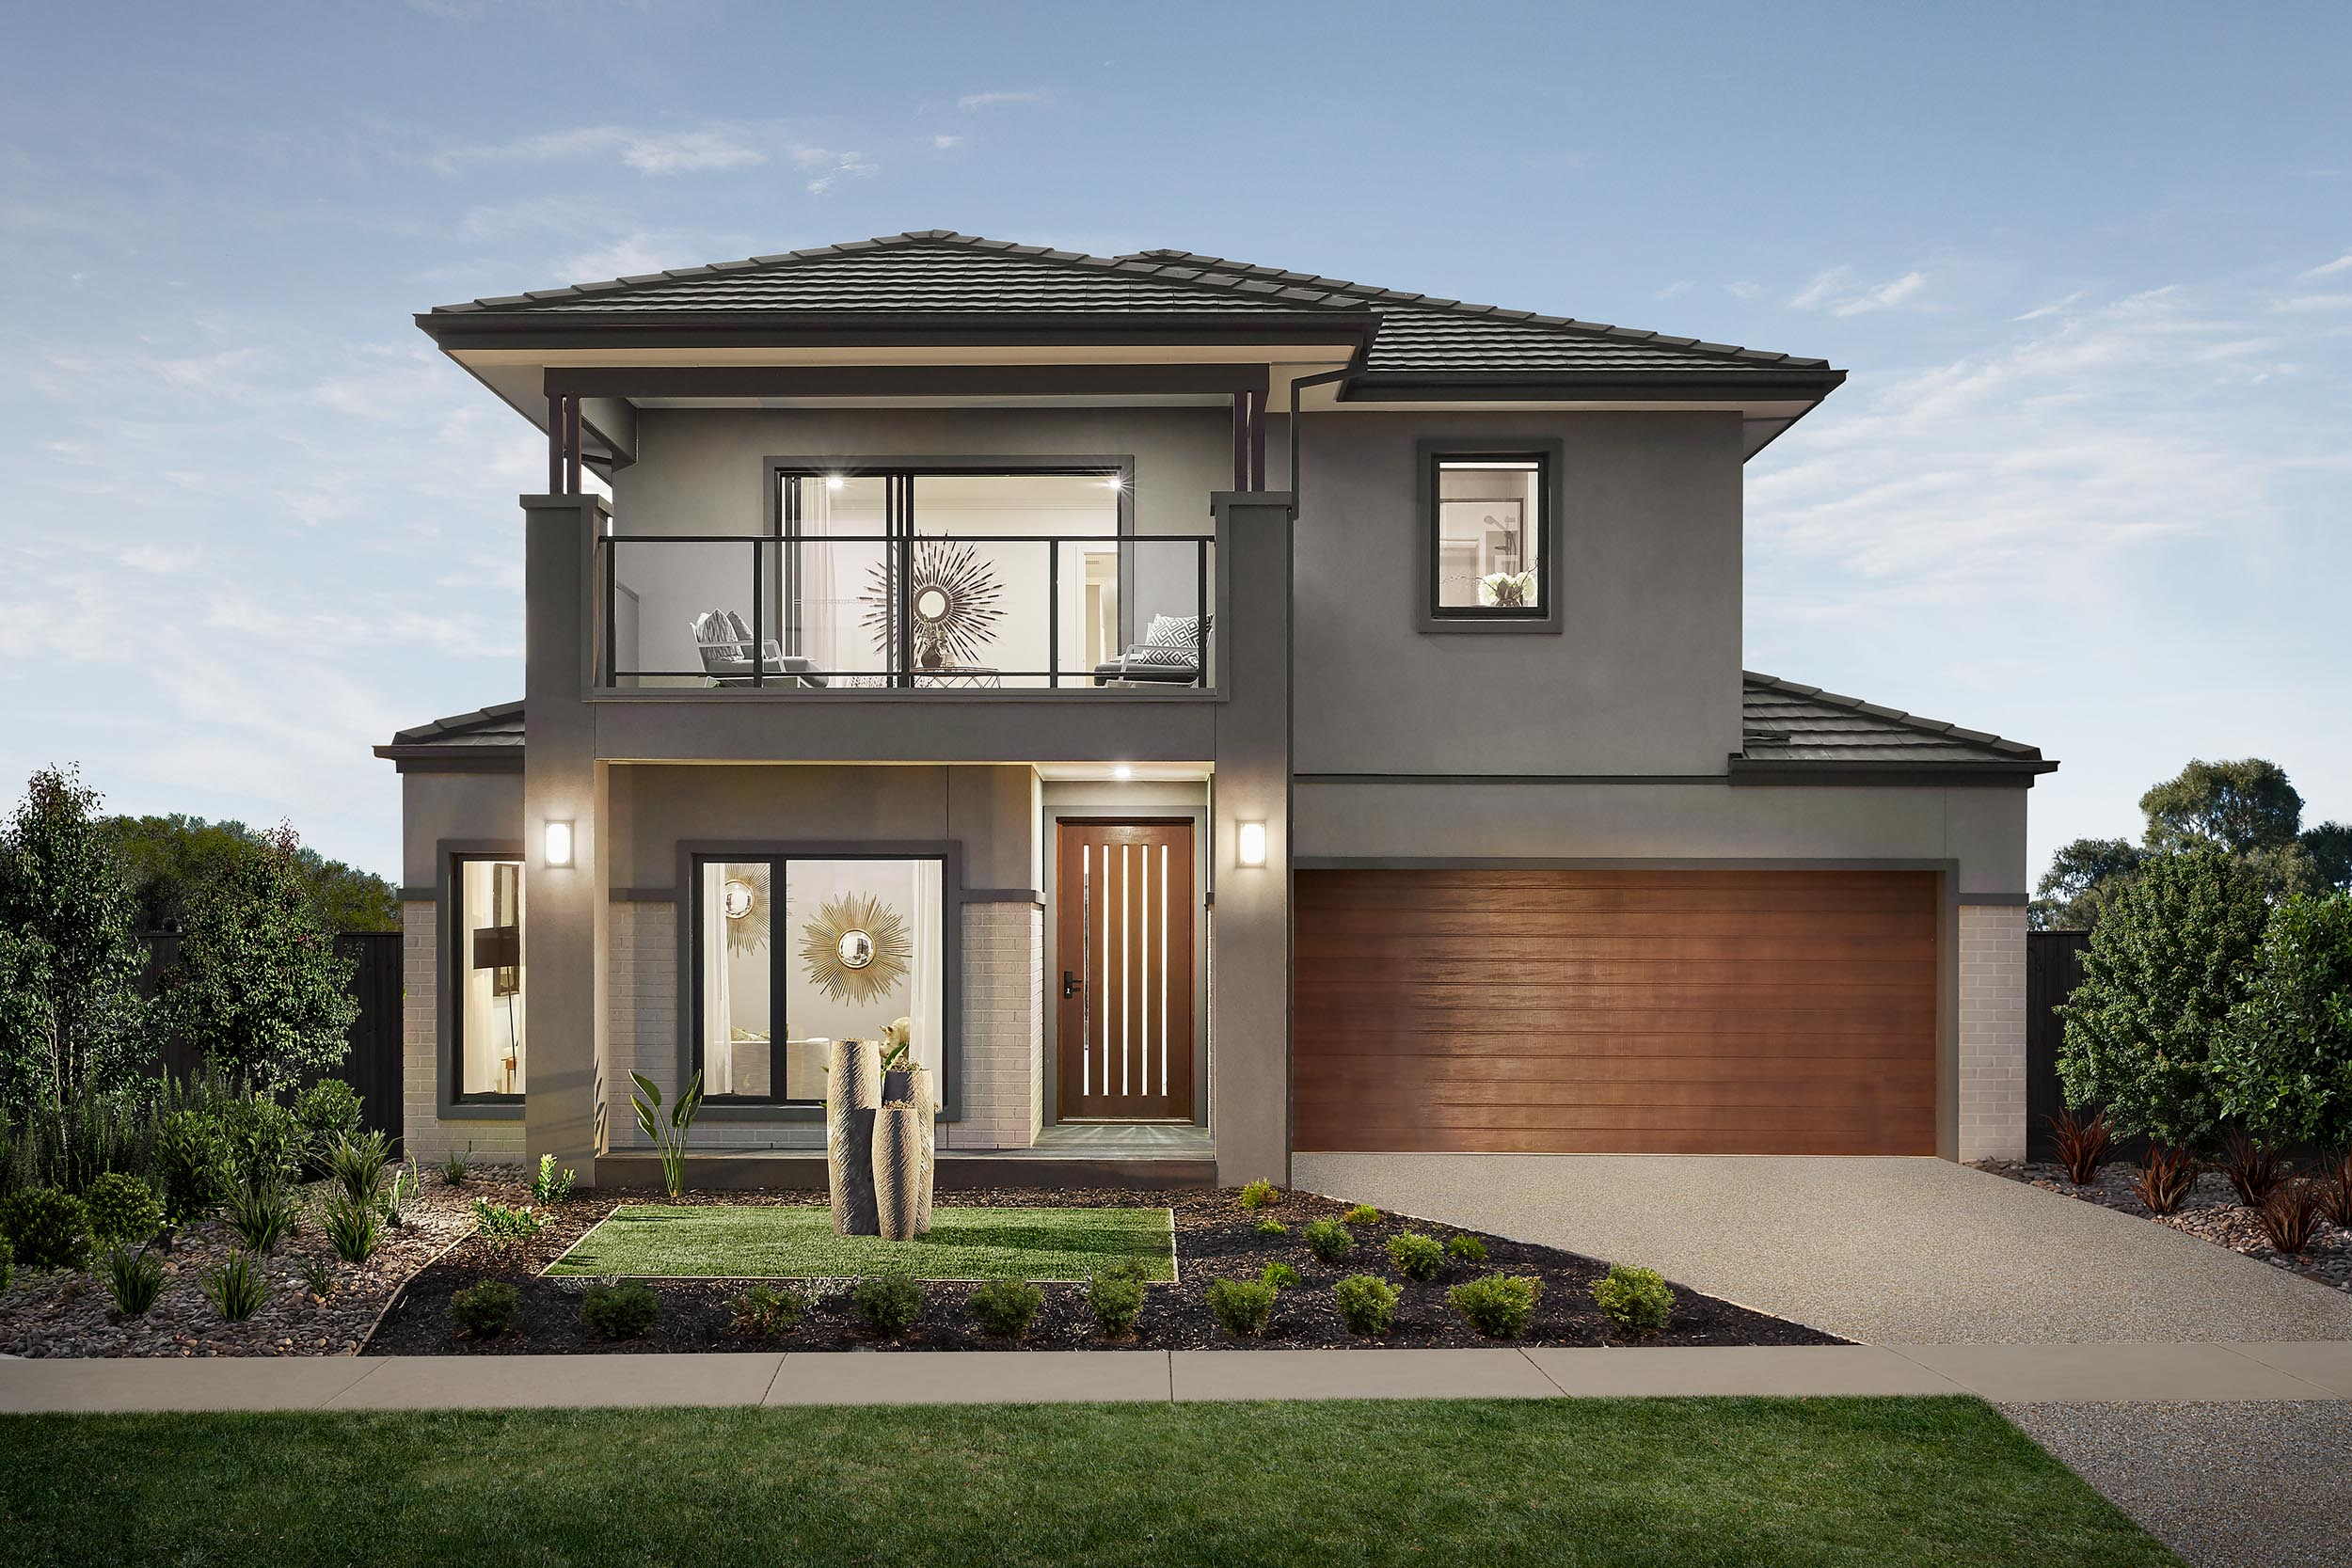 Savana 28 Home Design